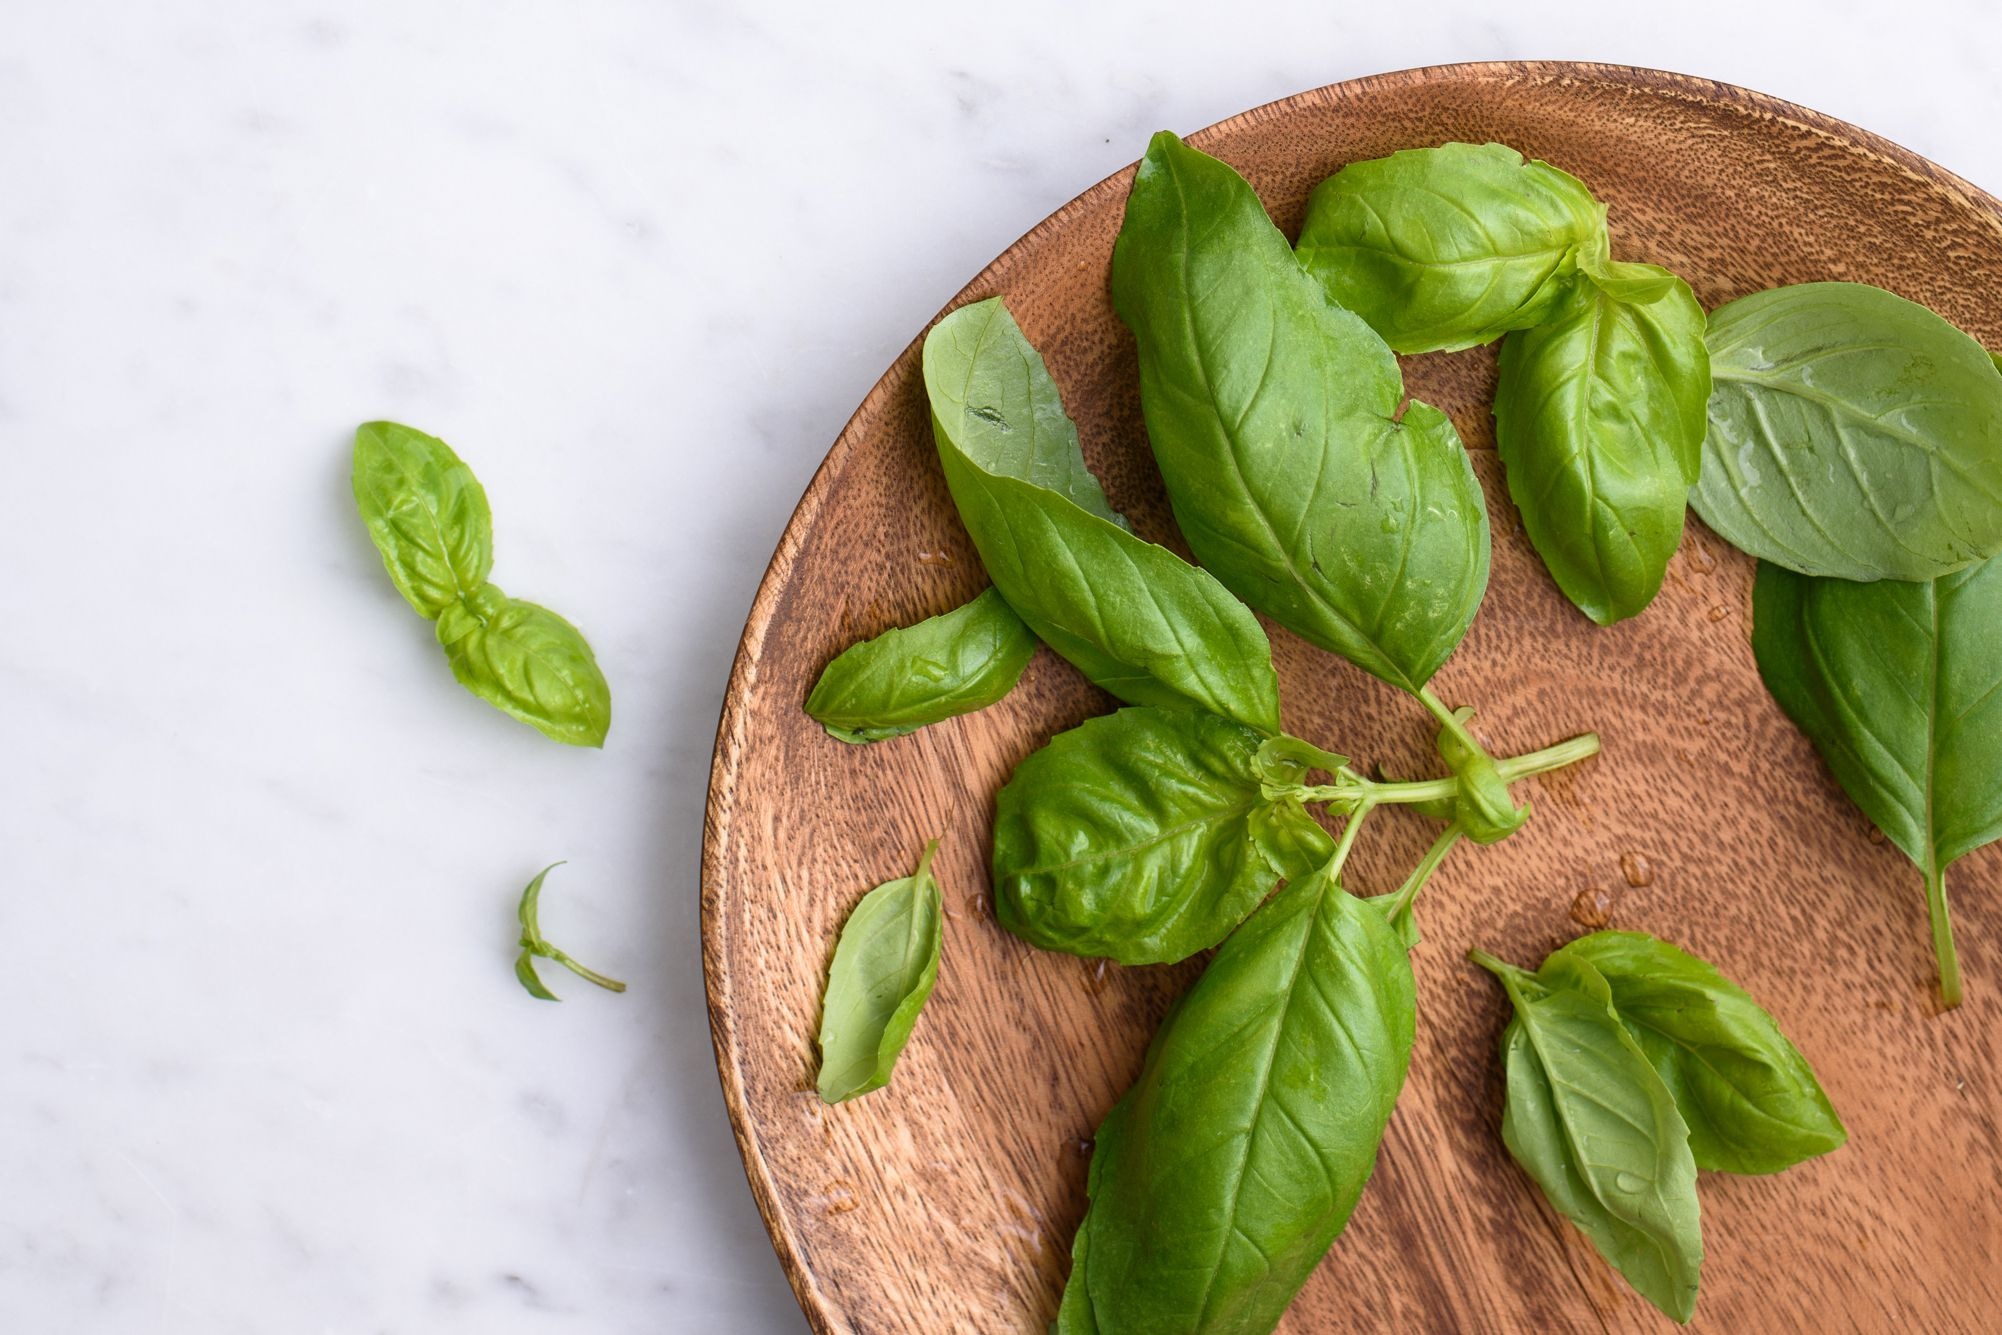 basil leaves on wooden plate